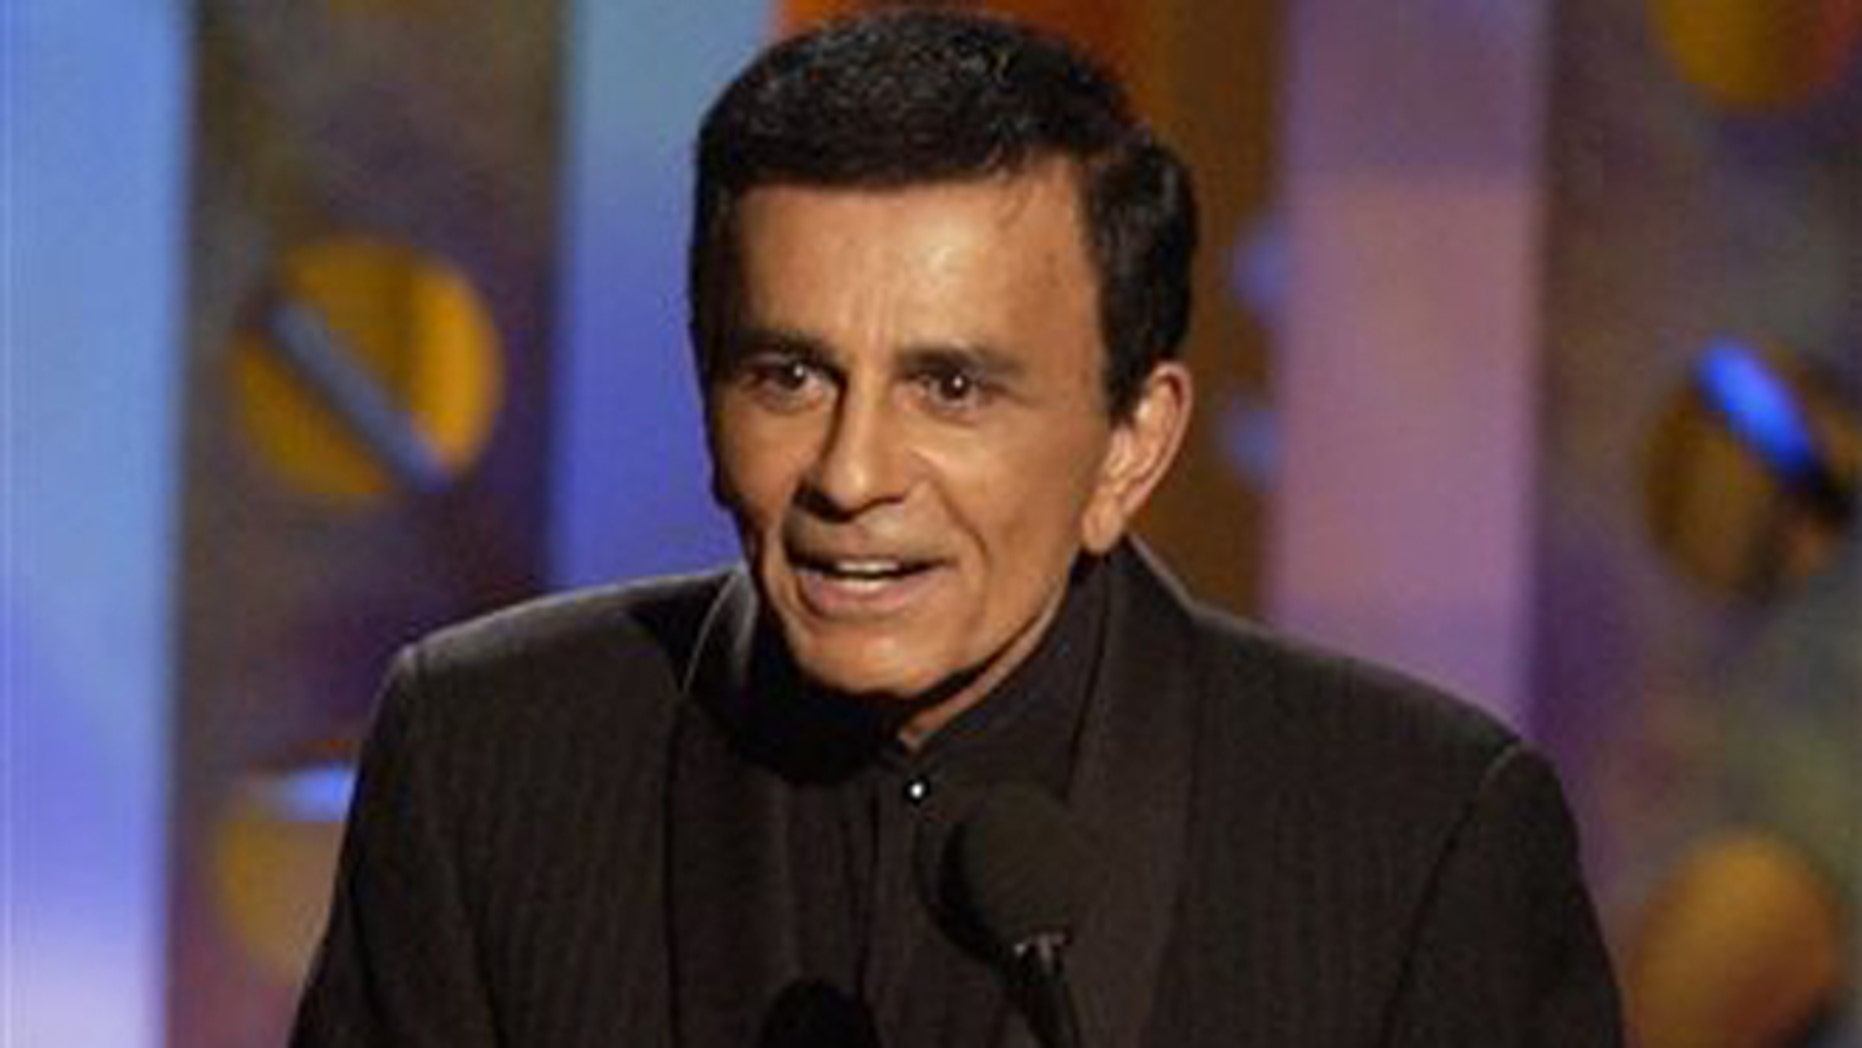 FILE - In this Monday, Oct. 27, 2003 file photo, Casey Kasem accepts a radio icon award during the Radio Music Awards in Las Vegas. Kasem, the smooth-voiced radio broadcaster who became the king of the top 40 countdown, died Sunday, June 15, 2014, according to Danny Deraney, publicist for Kasem's daughter, Kerri. He was 82. (AP Photo/Joe Cavaretta, file)